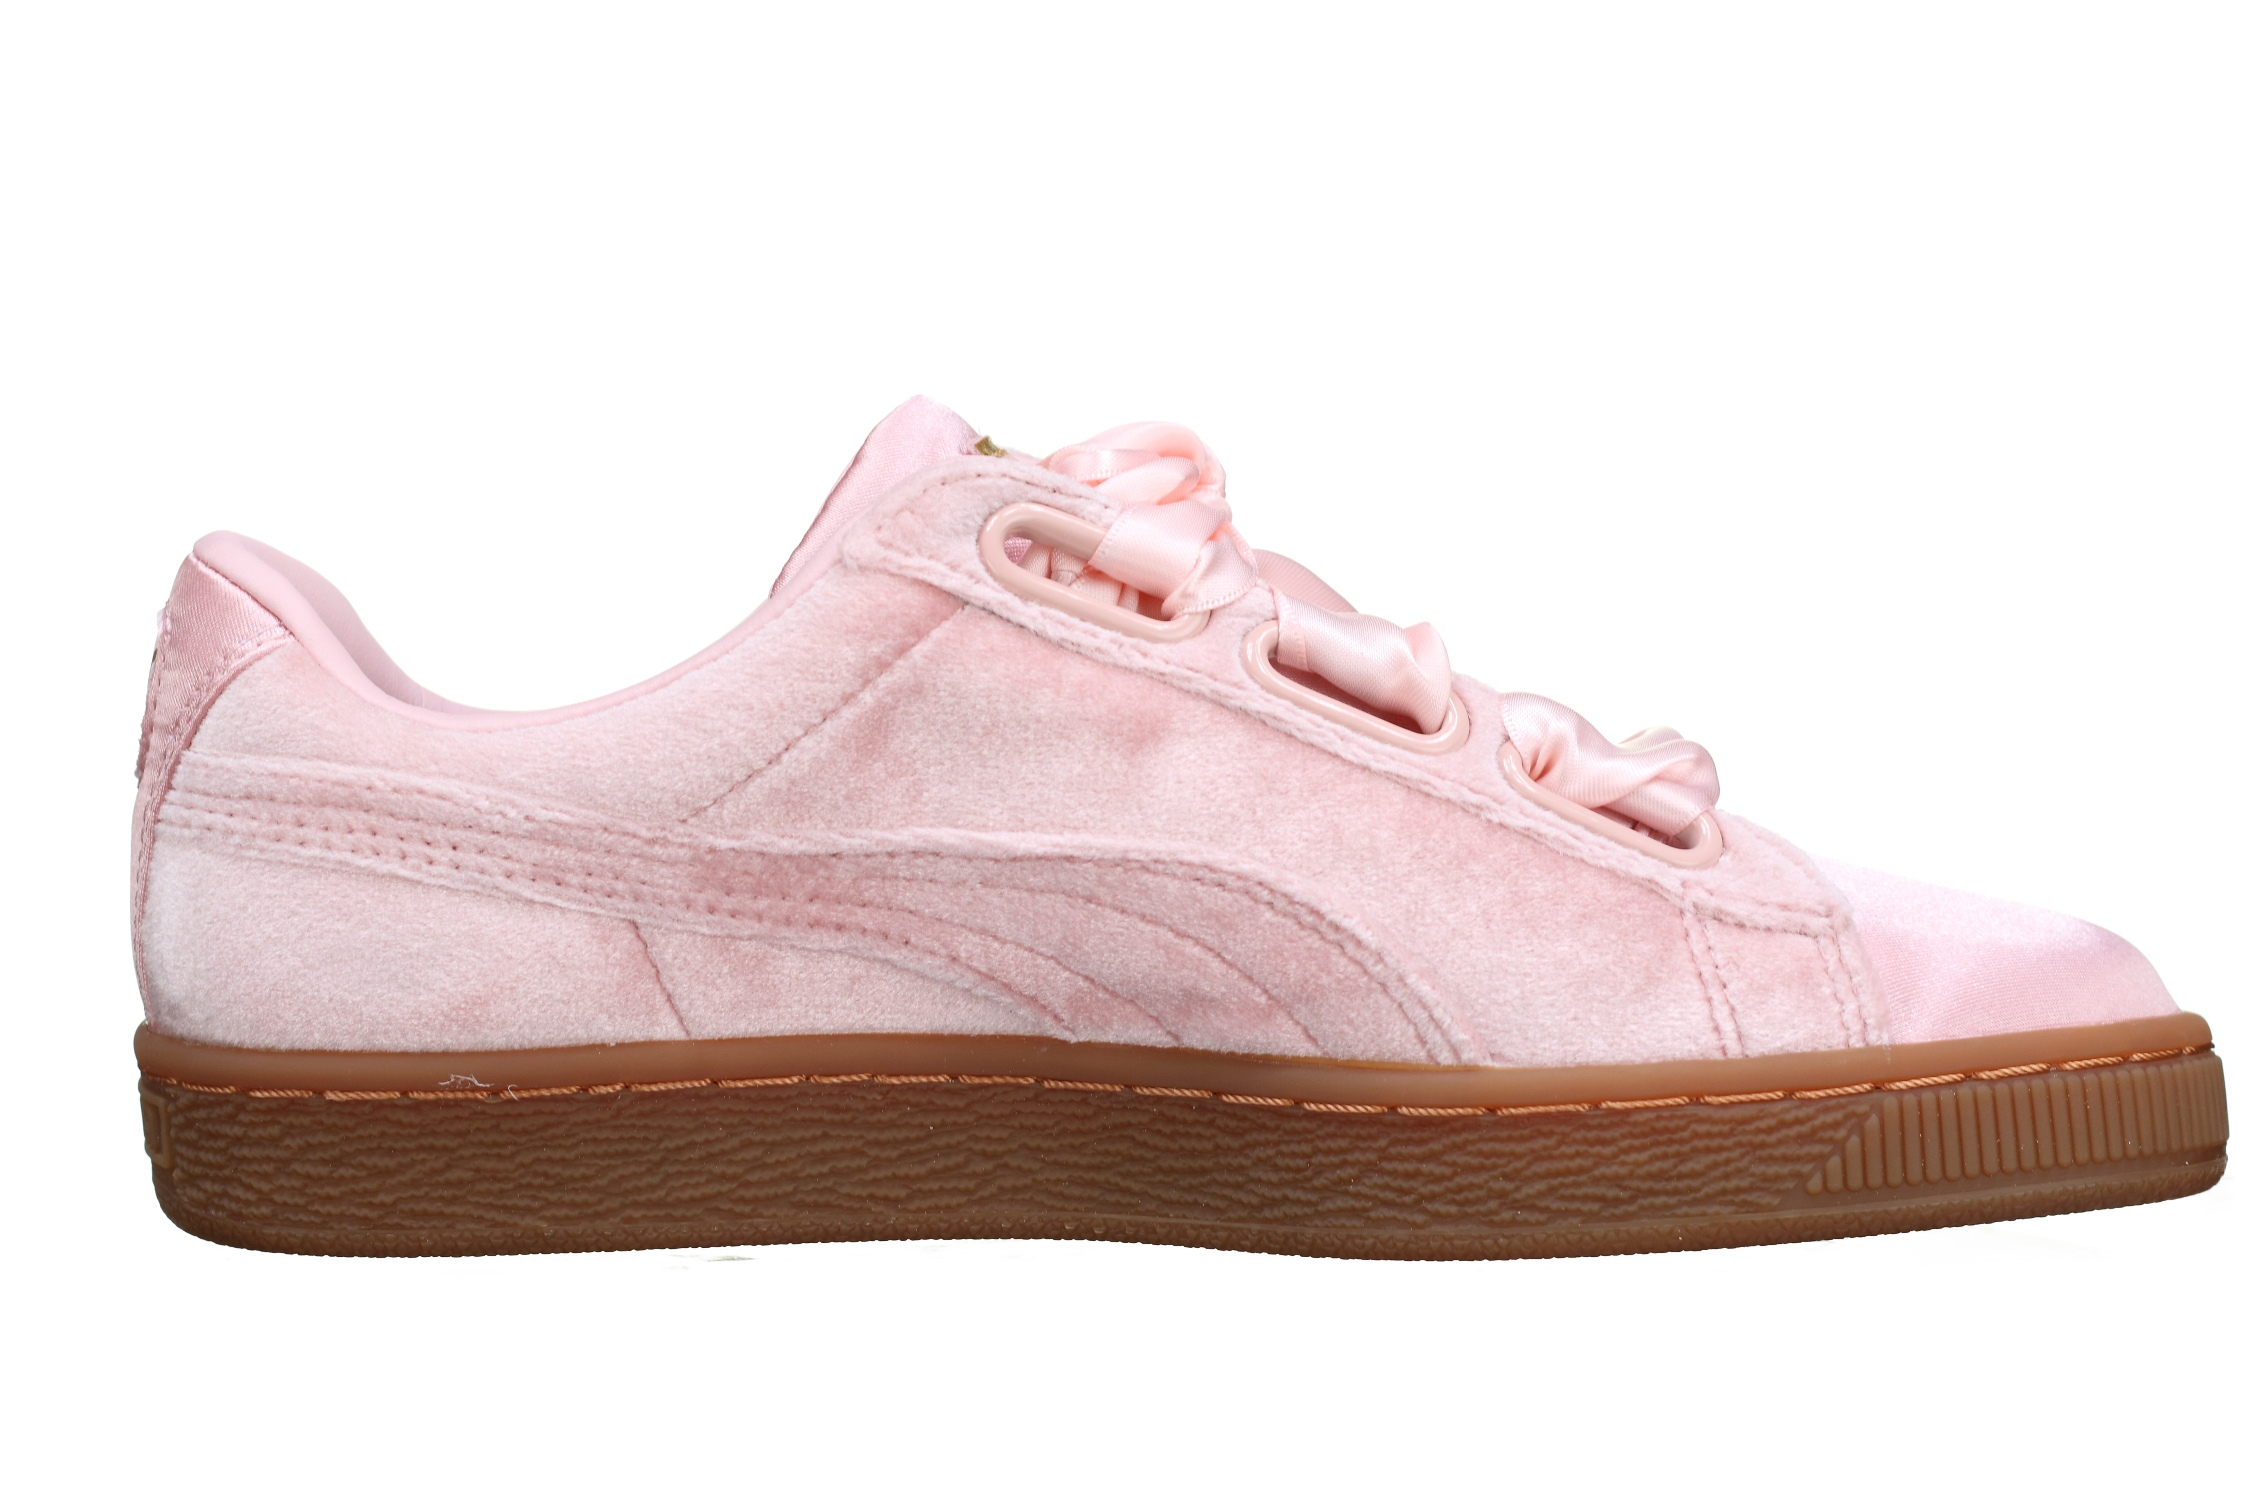 http://www.leadermode.com/137683/puma-basket-heart-vs-wn-s-366731-02-rose.jpg